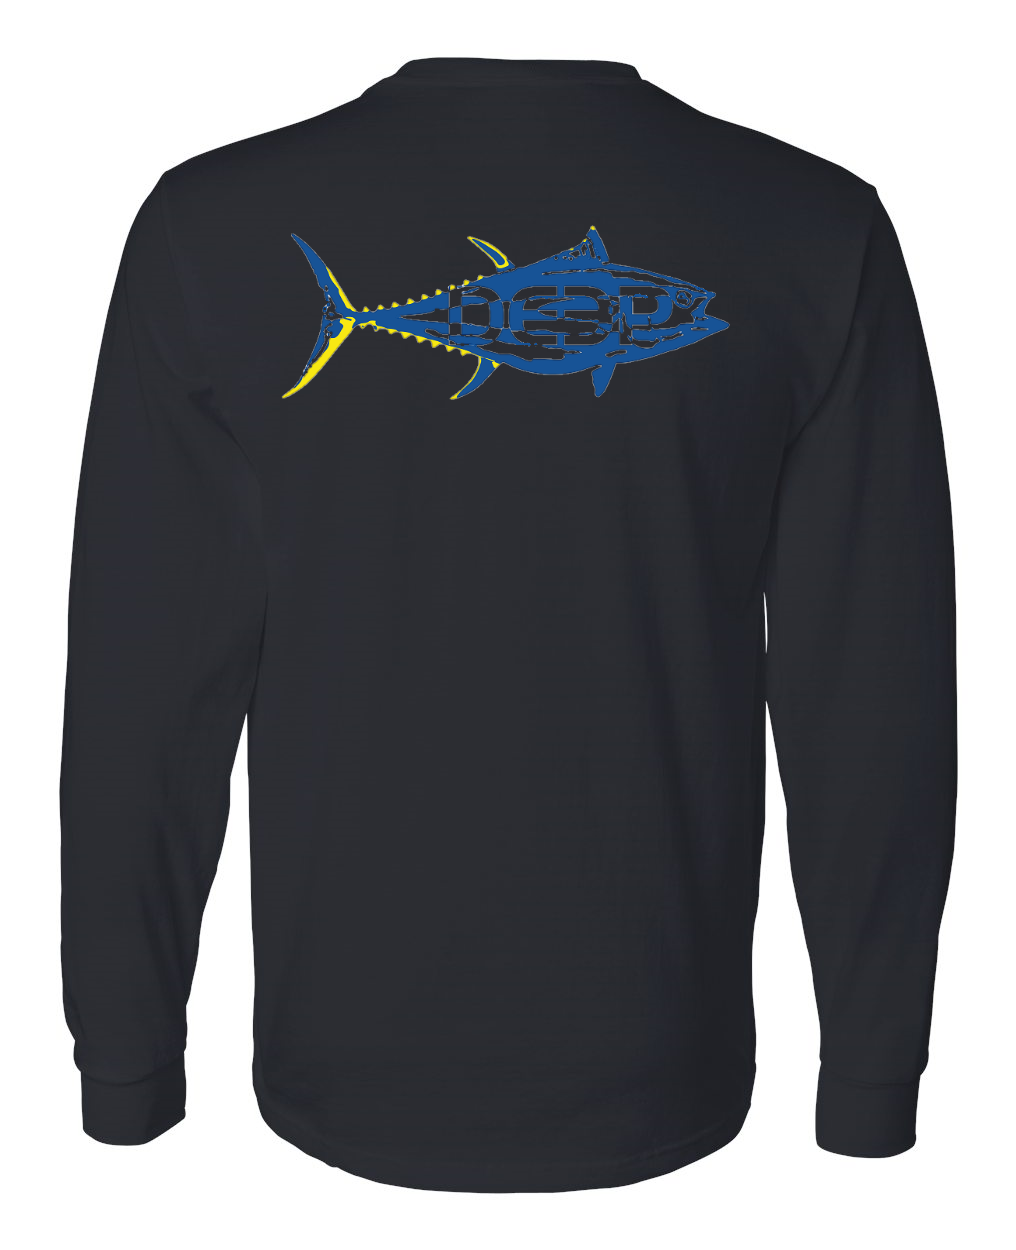 Big Eye Cotton Long Sleeve - Black